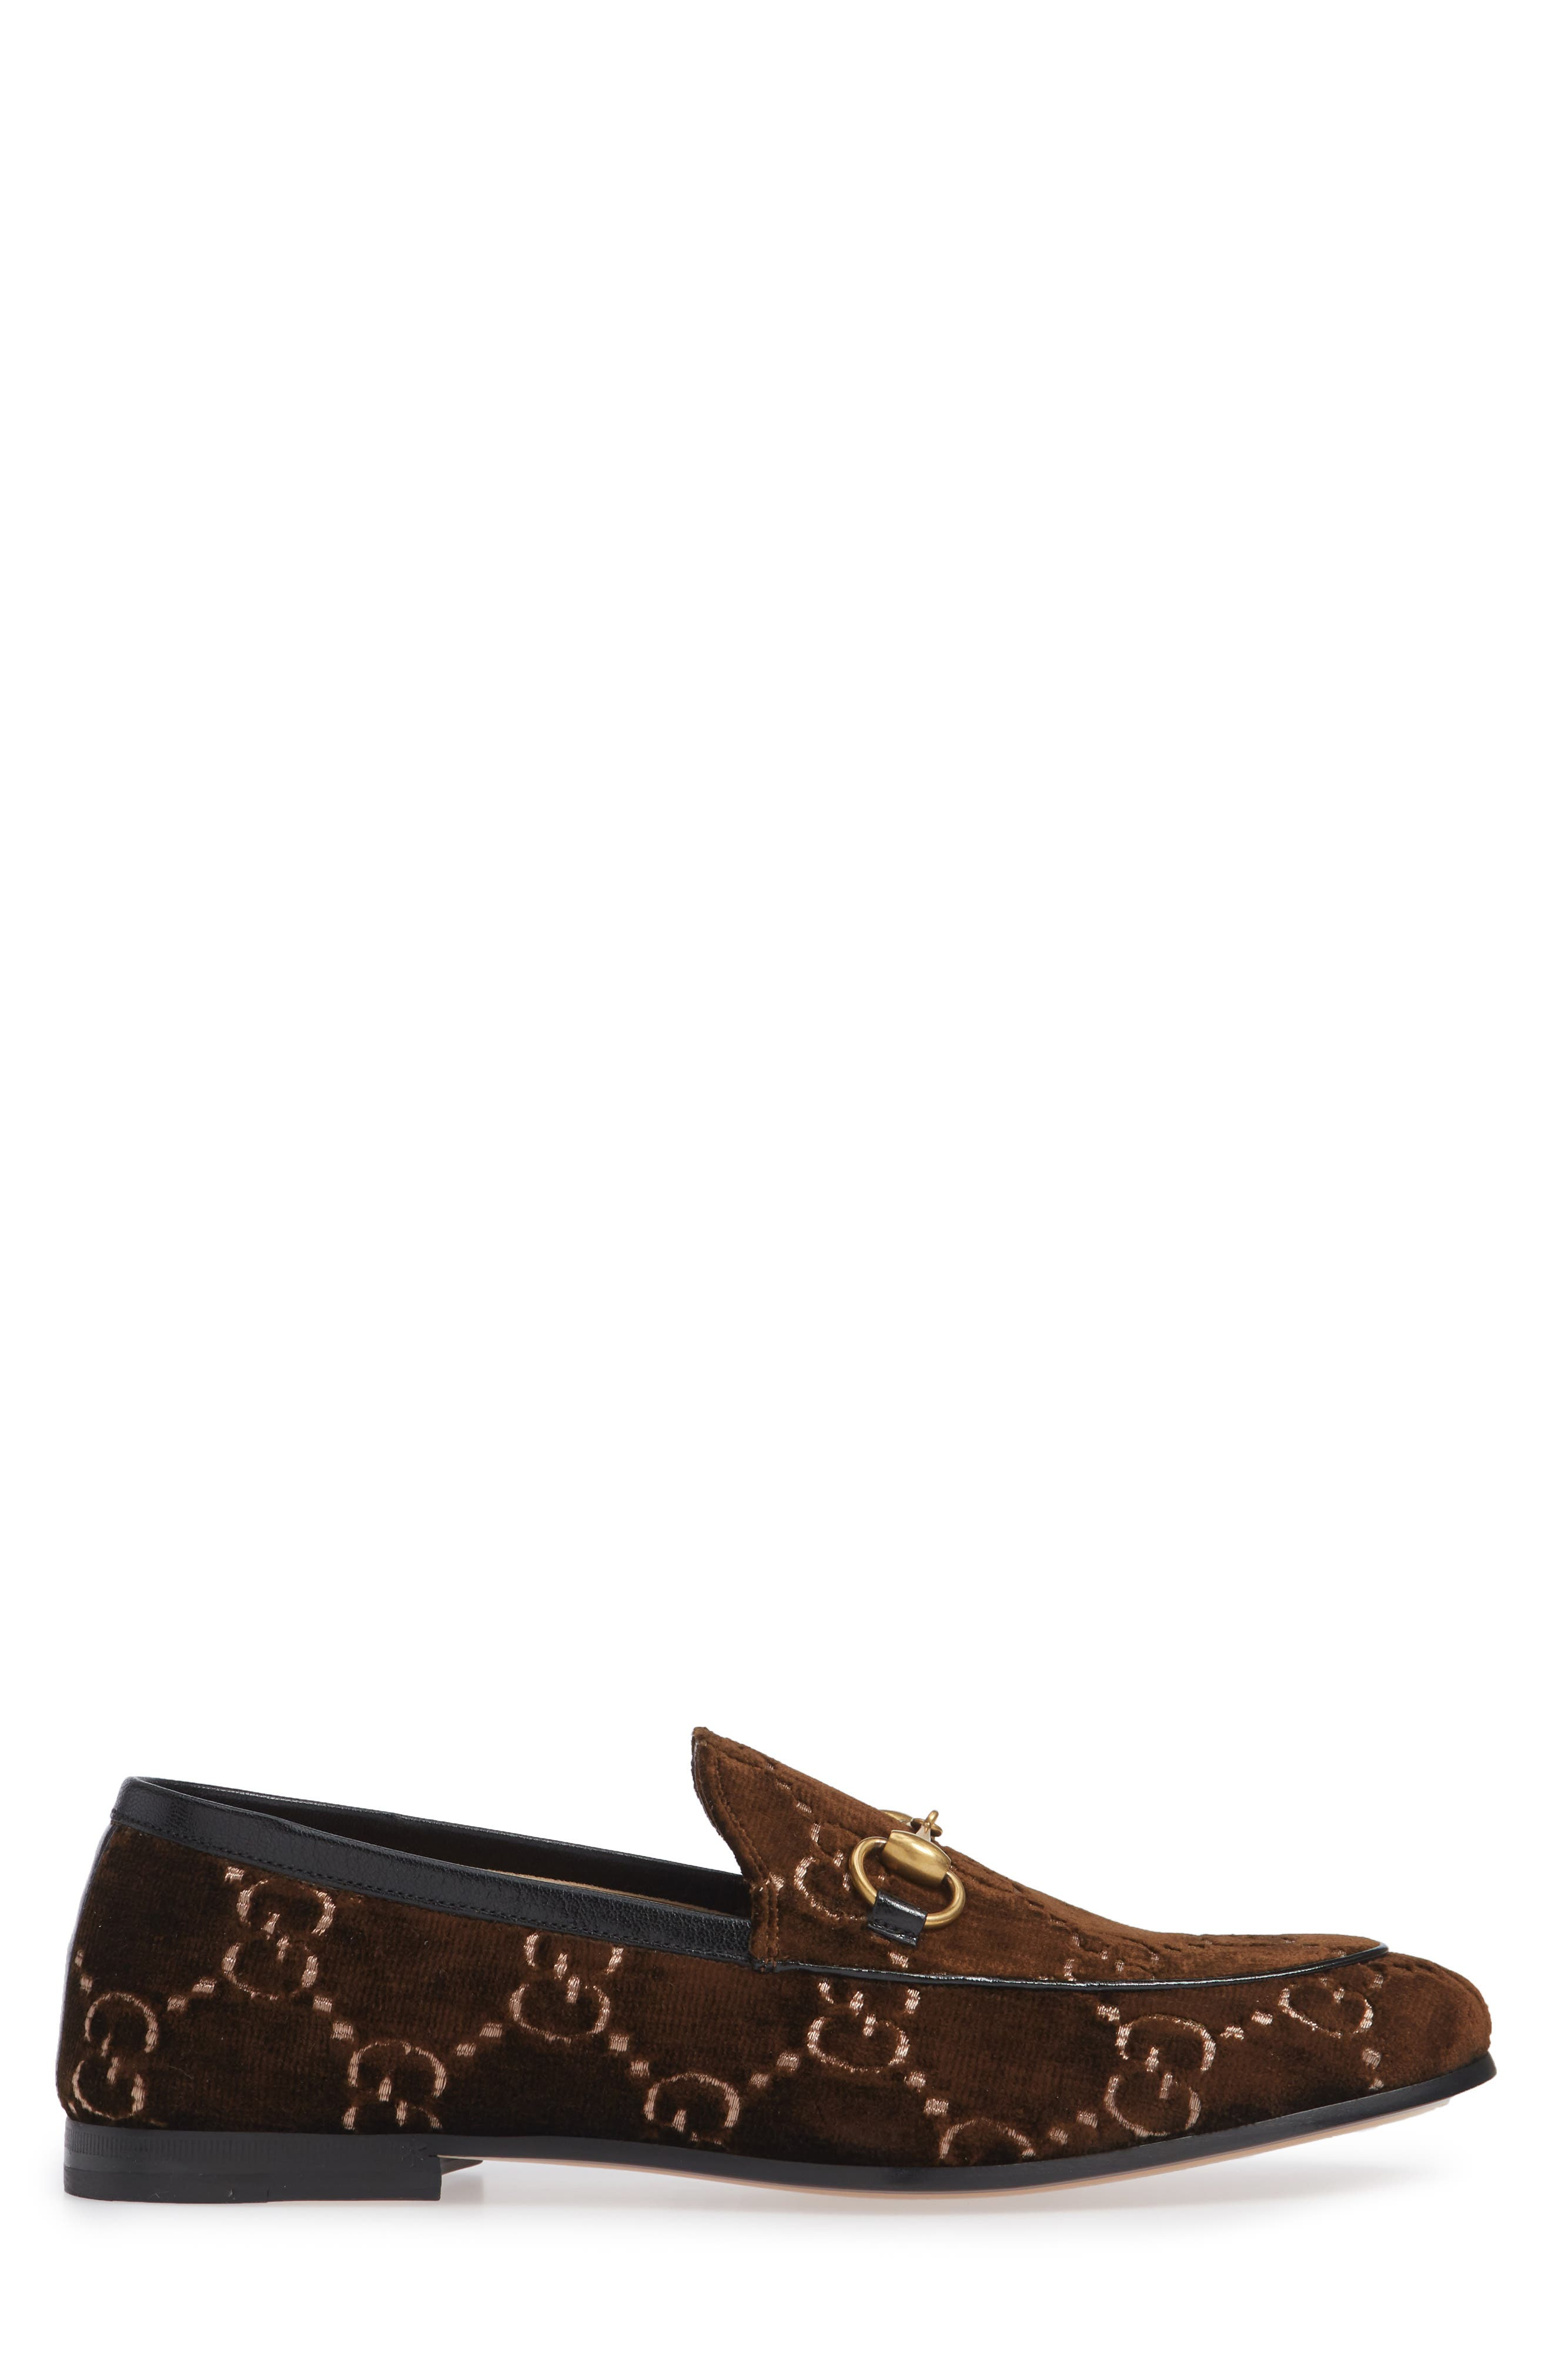 Jordaan GG Velvet Loafer,                             Alternate thumbnail 3, color,                             BROWN/ NERO